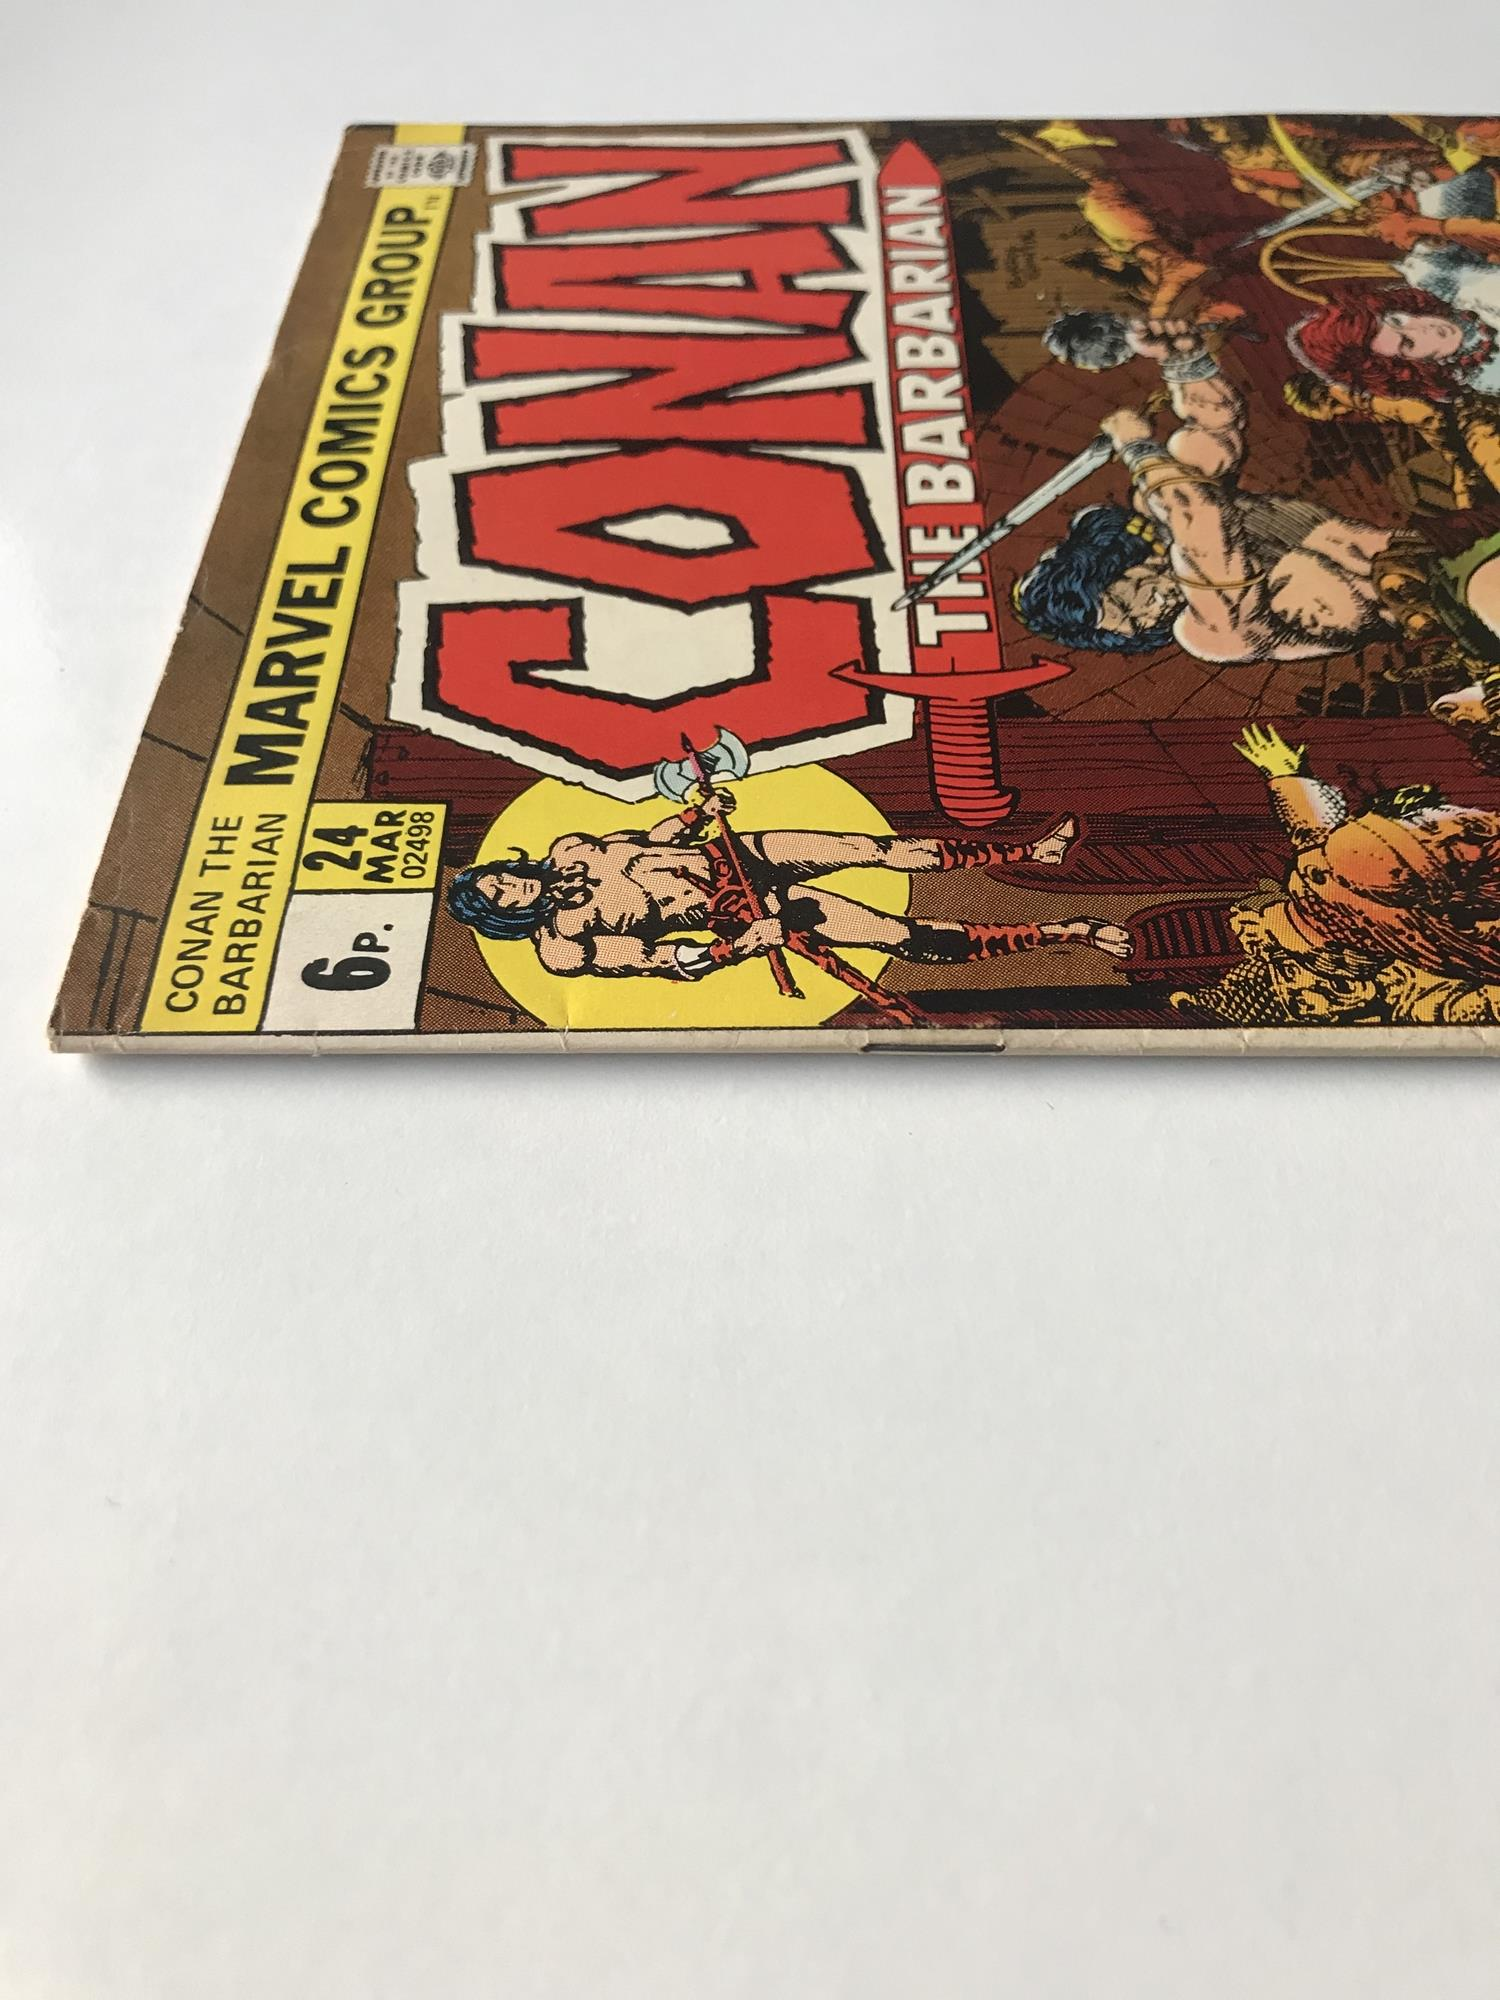 Lot 42 - CONAN # 24 (1973 - MARVEL - Pence Copy) - First full appearance of Red Sonja - Barry Smith cover and